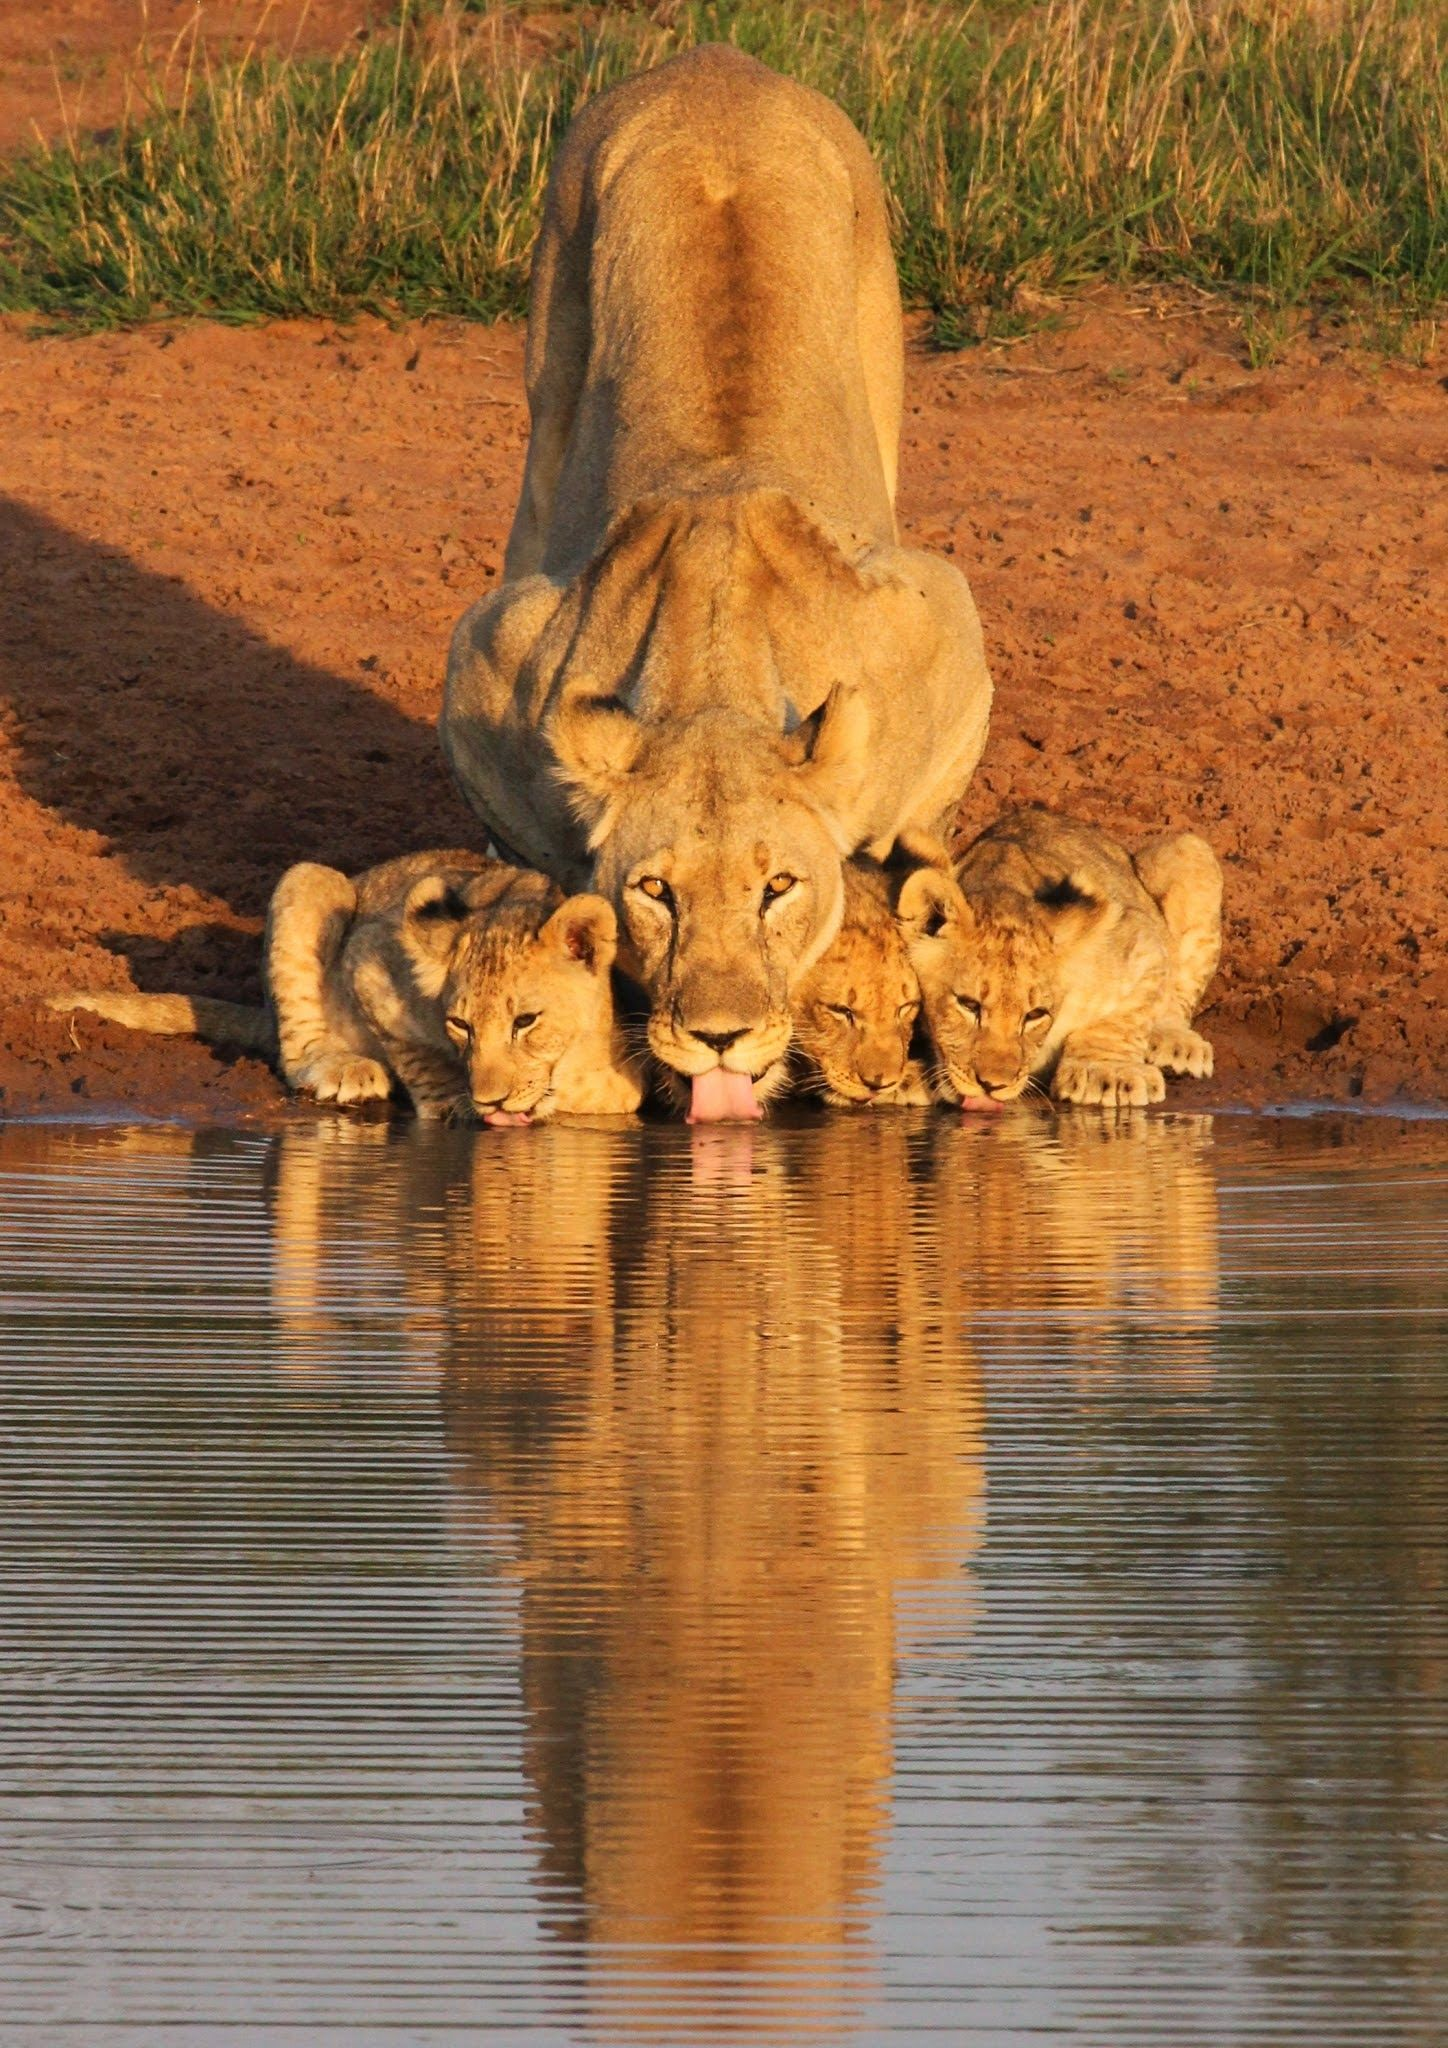 ♡♥Mama lion with her 3 babies drink water Beautiful ick on